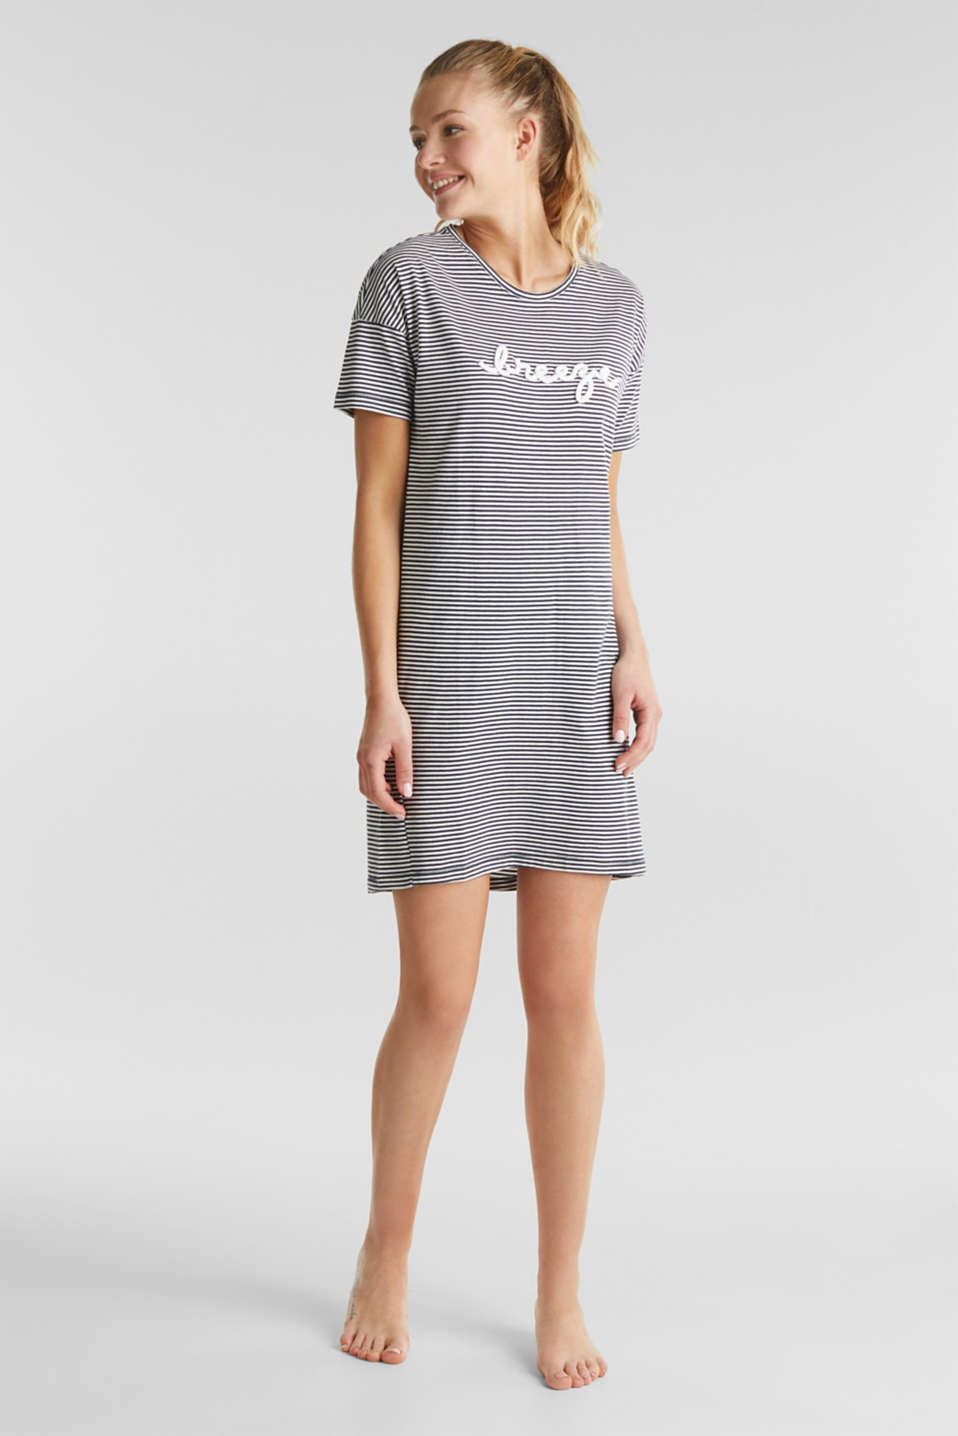 Esprit - Jersey nightshirt, 100% cotton